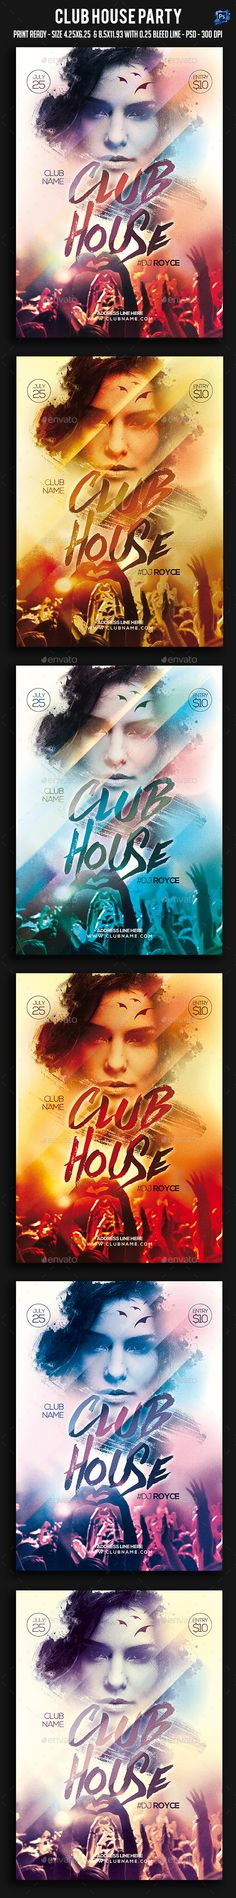 Club House Party Flyer Template PSD